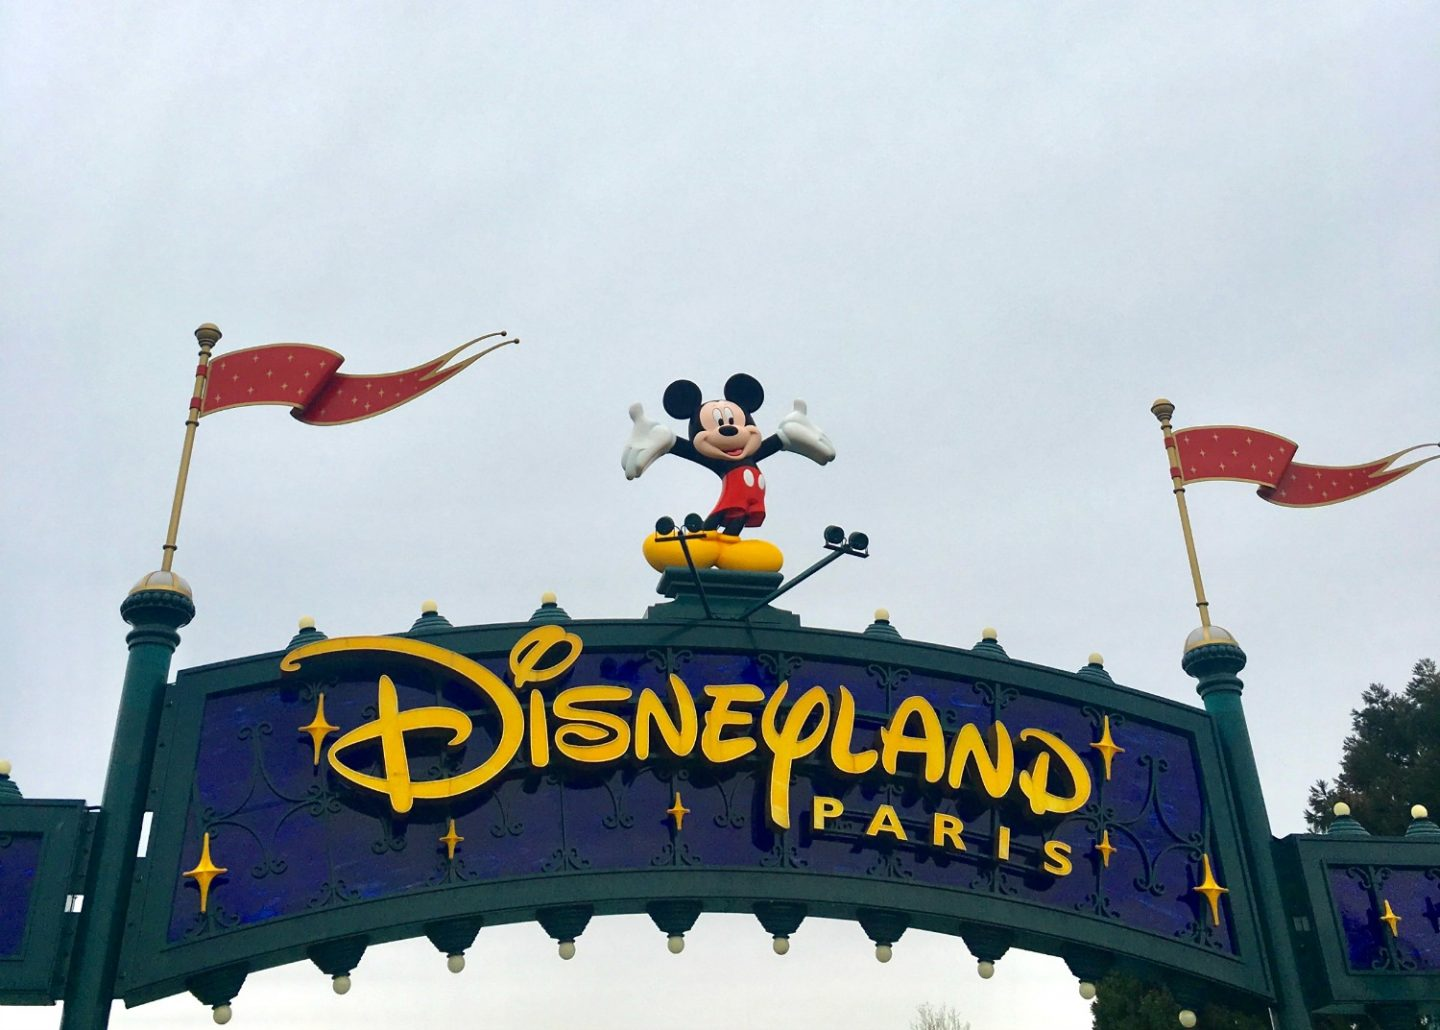 Disneyland Paris entrance sign - tips for your first trip to Disney